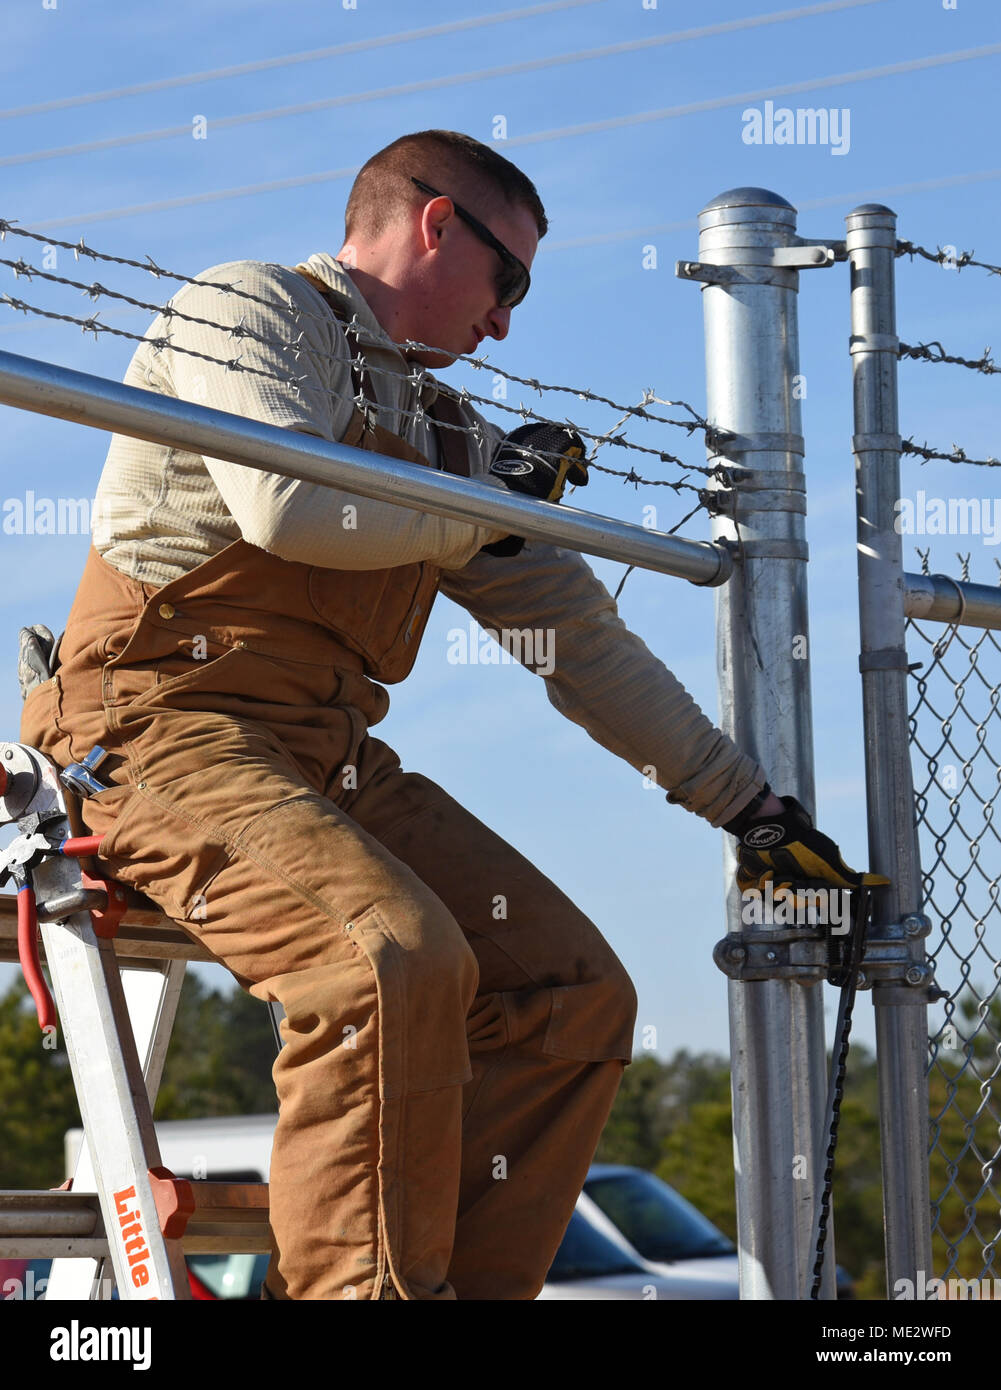 A U.S. Airman assigned to the 20th Civil Engineer Squadron constructs a fence for a new MQ-9 site at Shaw Air Force Base, S.C., Dec. 12, 2018. Airmen began construction following results from an environmental assessment, using available equipment to prevent additional costs to the government and to reduce time waiting for new equipment to be delivered. (U.S. Air Force photo by Airman 1st Class Kathryn R.C. Reaves) Stock Photo